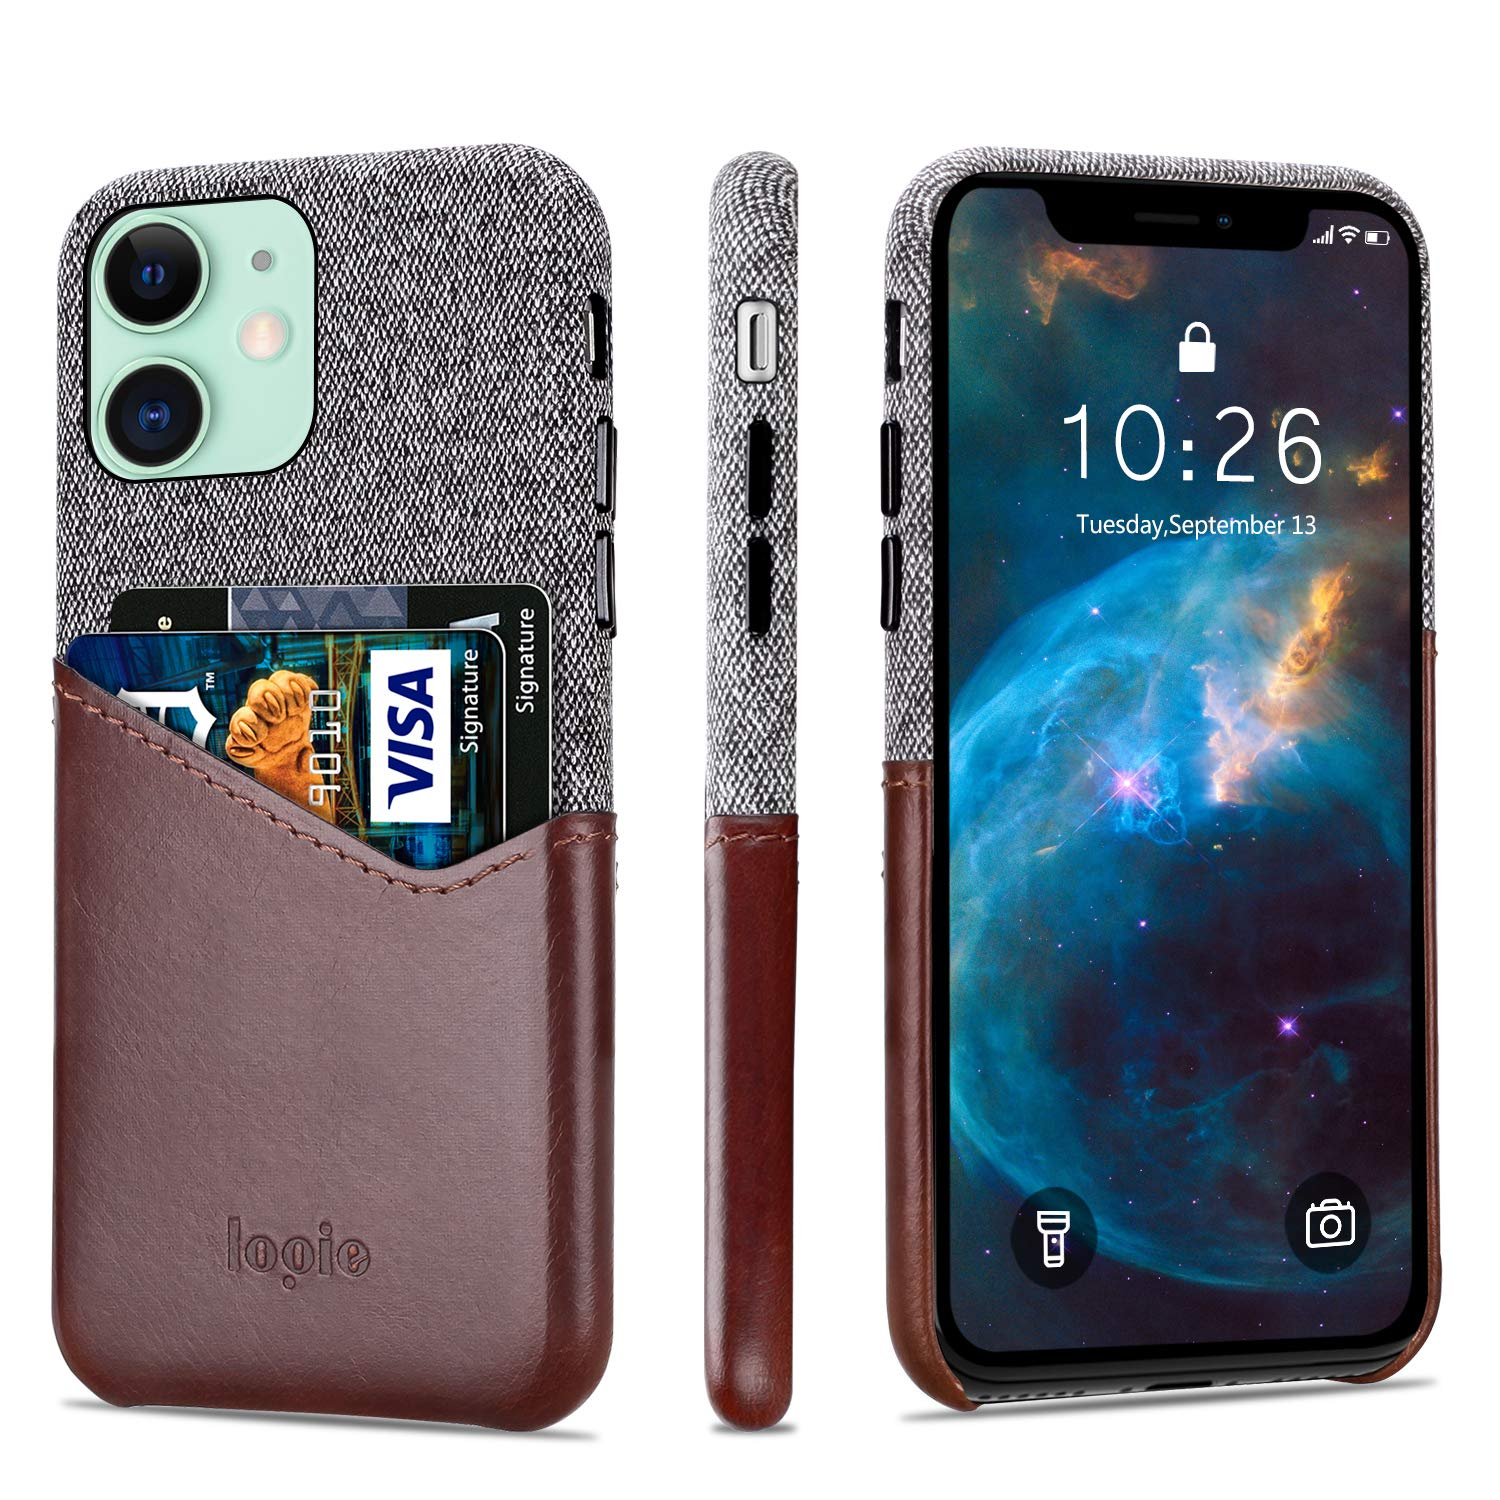 """Lopie [Sea Island Cotton Series] Slim Card Case Compatible for iPhone 11 2019 (6.1""""), Fabric Protection Cover with Leather Card Holder Slot Design, Dark Brown"""